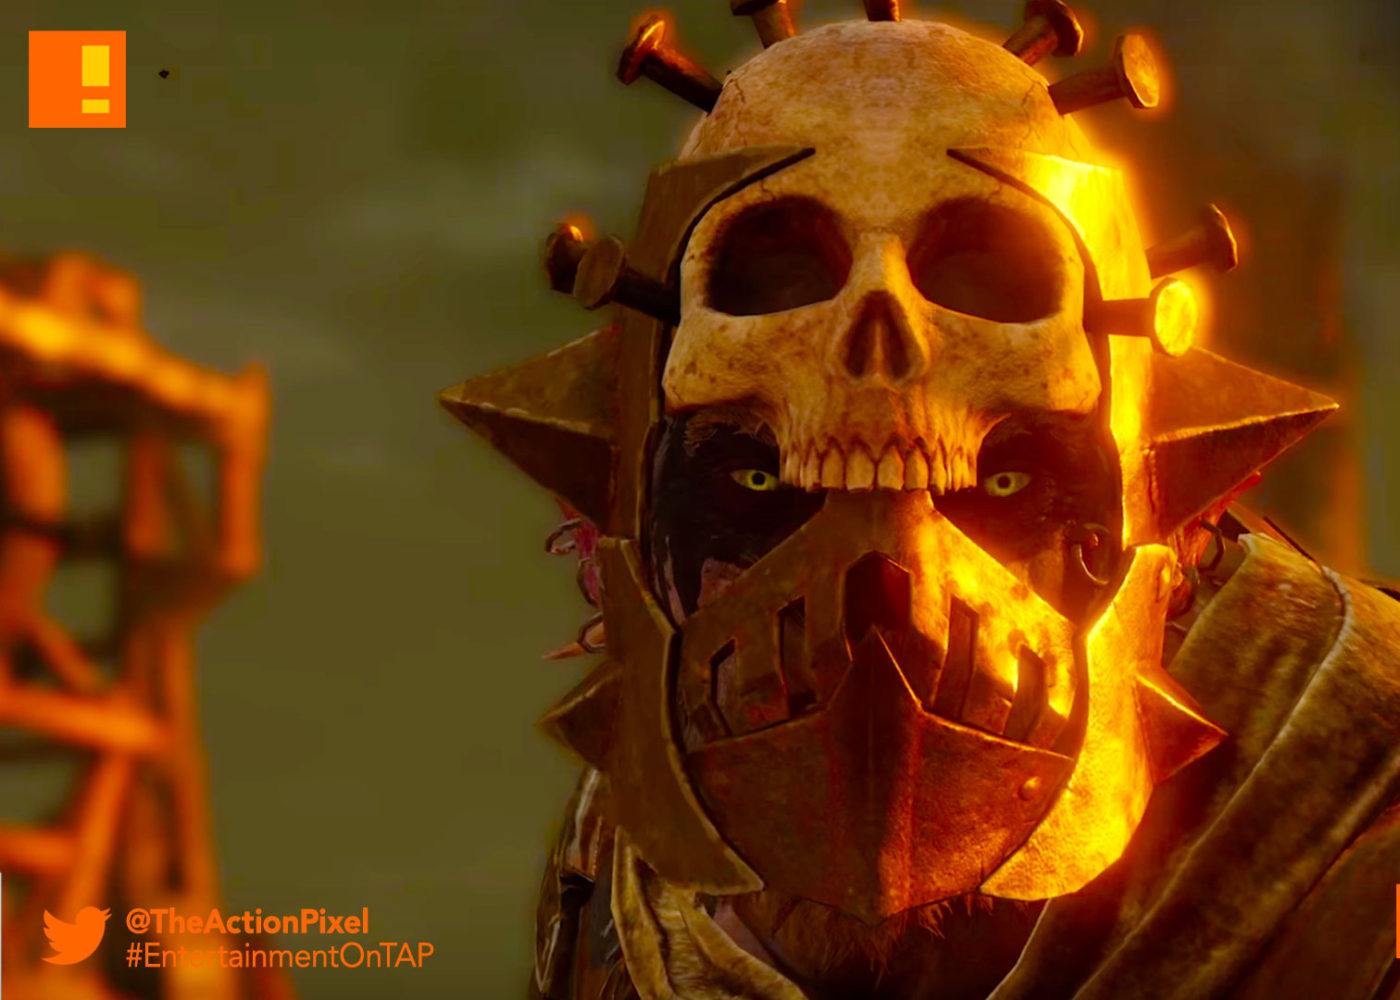 shadow of war, middle-earth, mobile, middle-earth: shadow of war, entertainment on tap, the action pixel,terror tribe,